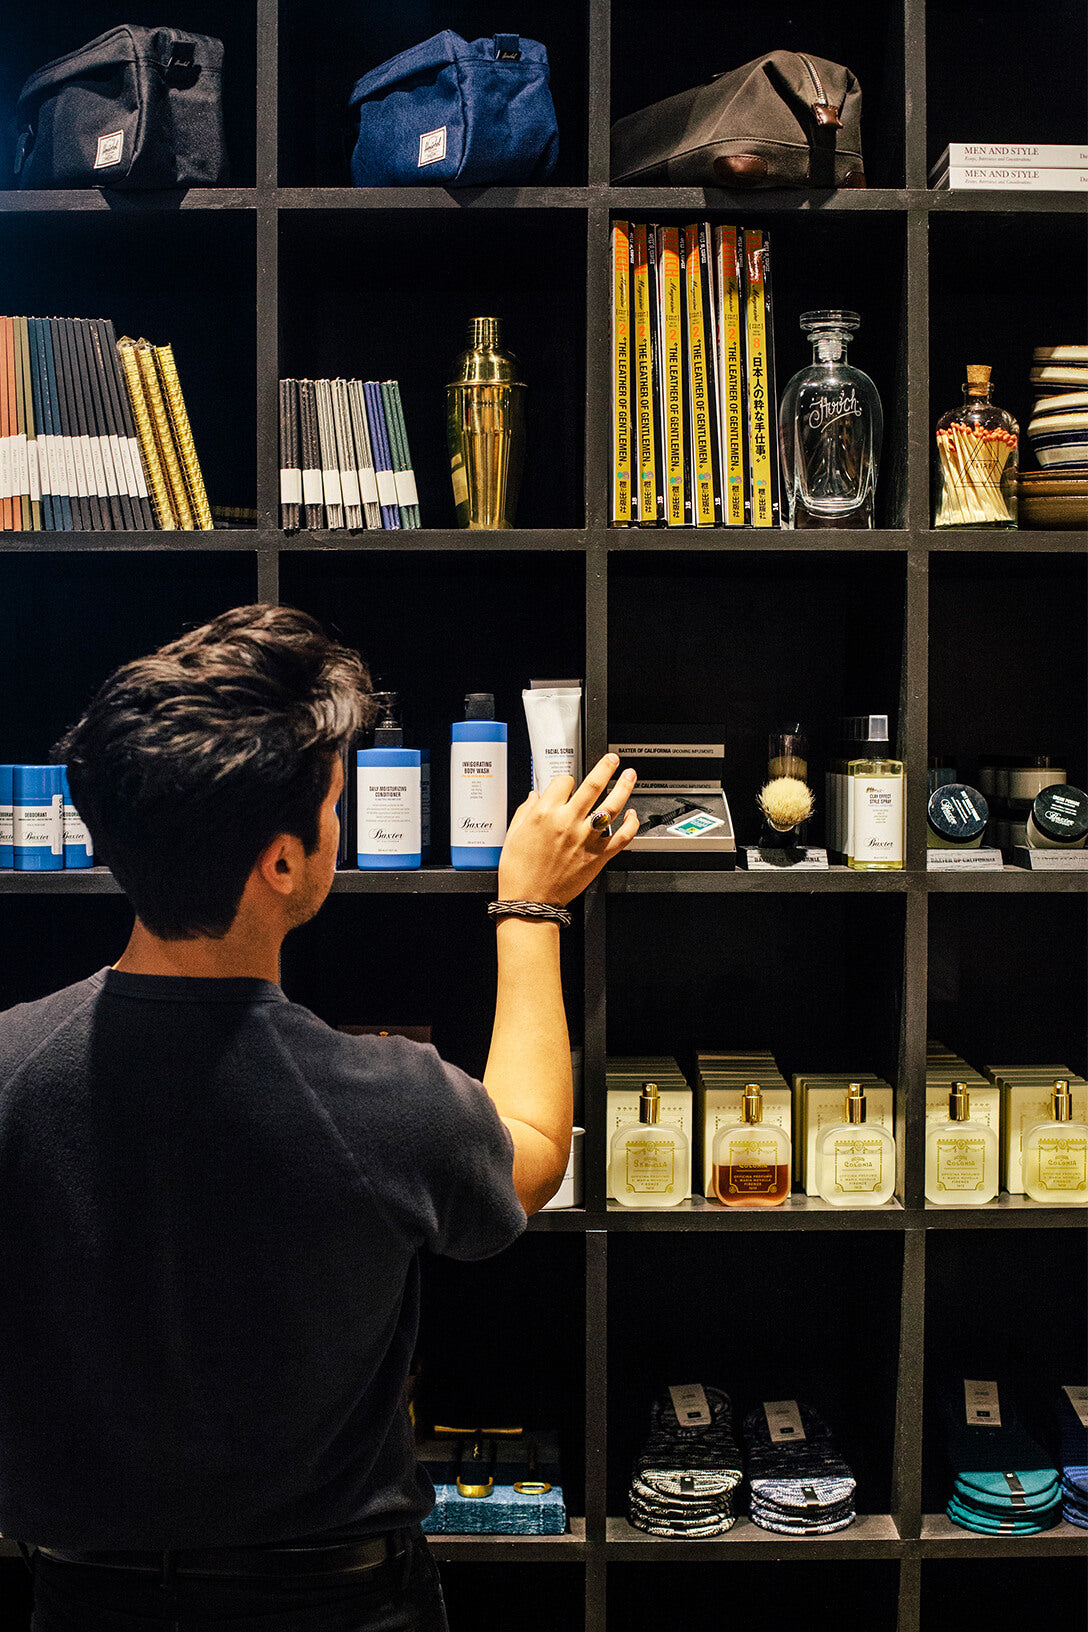 STAG employee restocking product on shelves